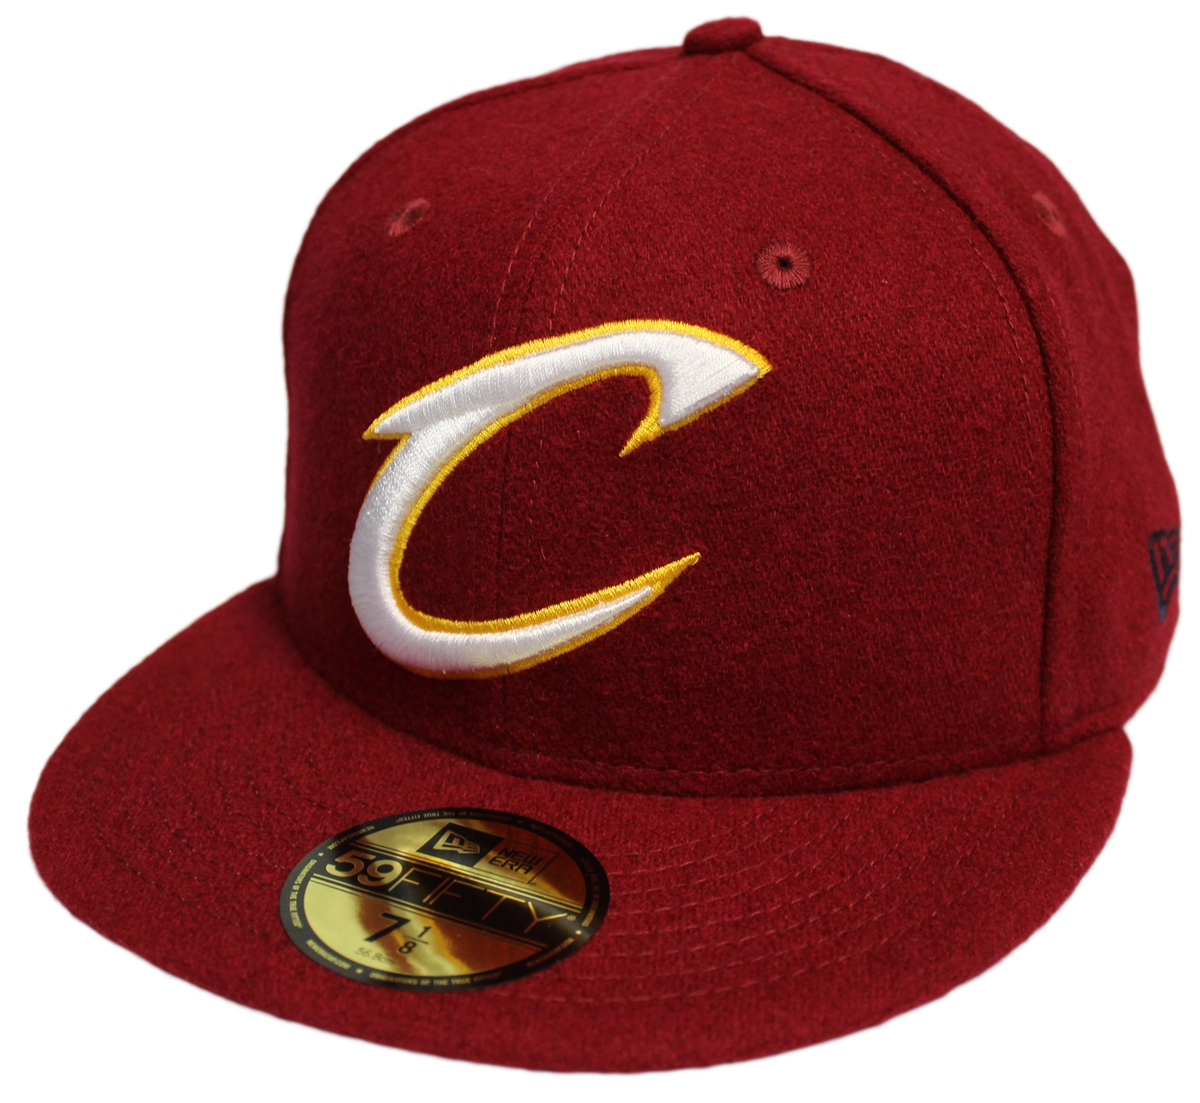 New Era 59Fifty Team Mandatory Cleveland Cavaliers Fitted Hat Cap ... 5e7125160119